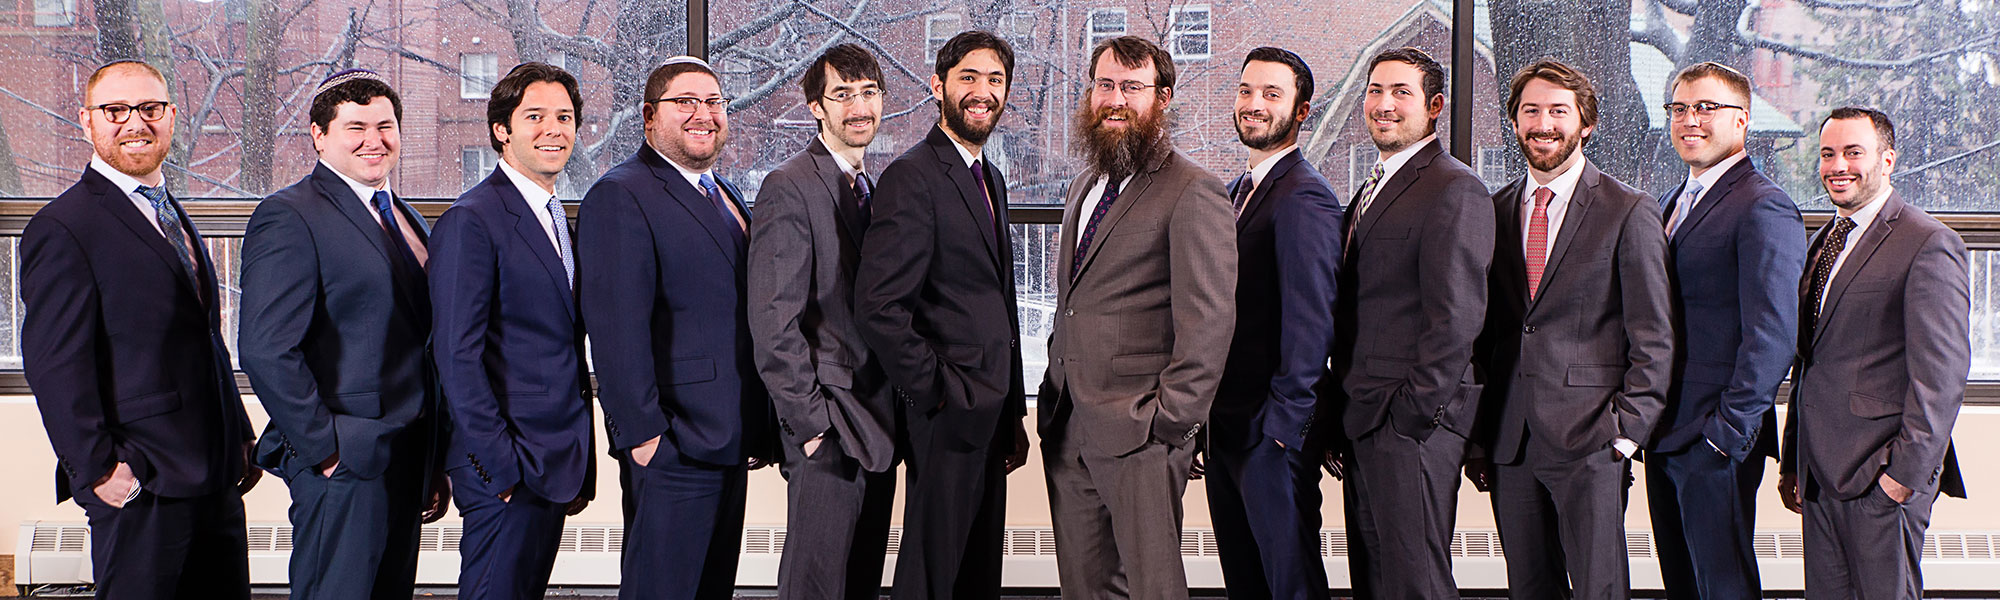 Meet Our Students - Chovevei Torah, Setting the standard in rabbinic leadership